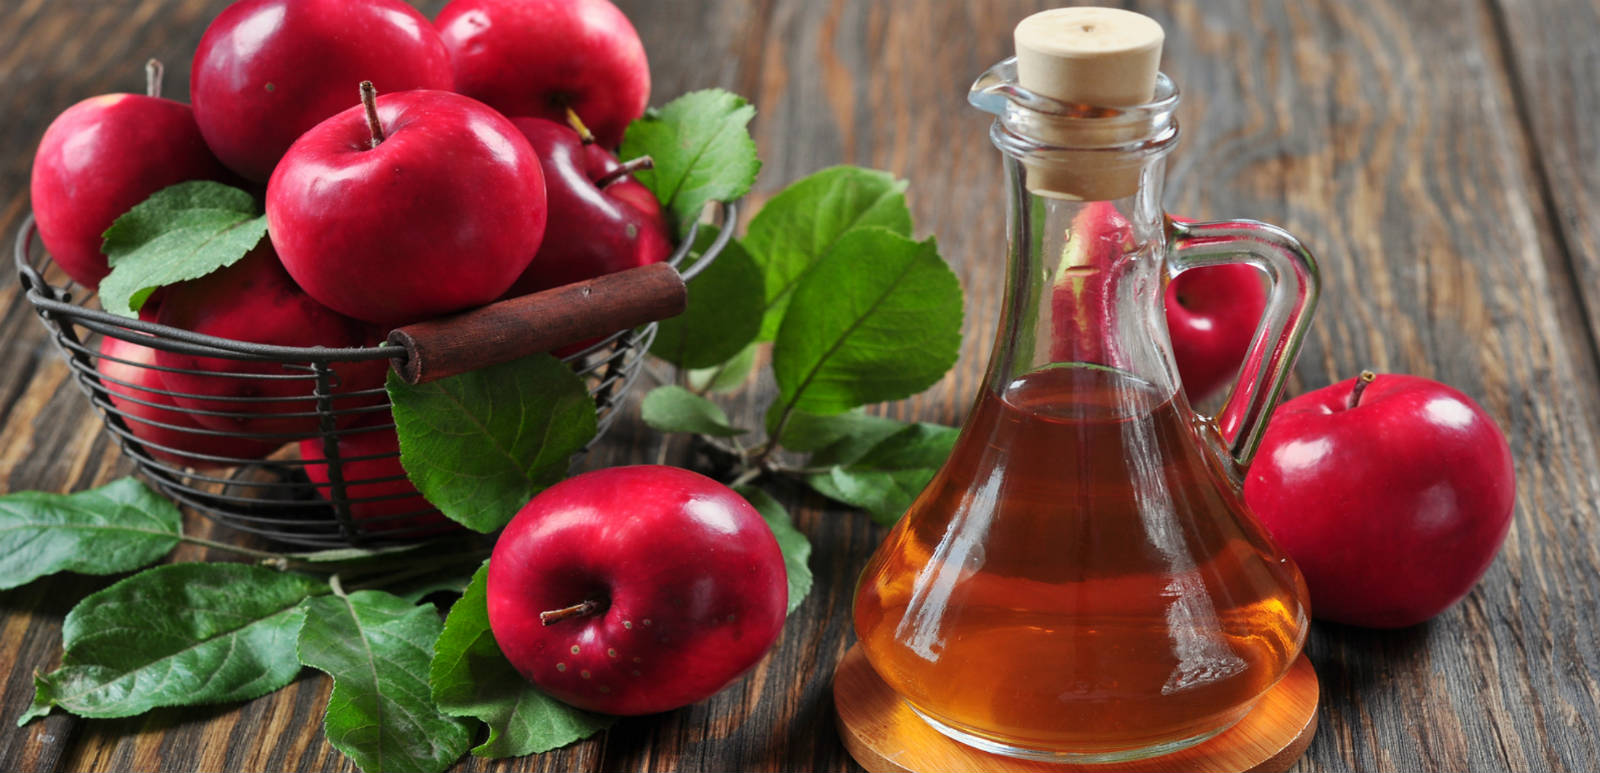 Apple Cider Vinegar Featured